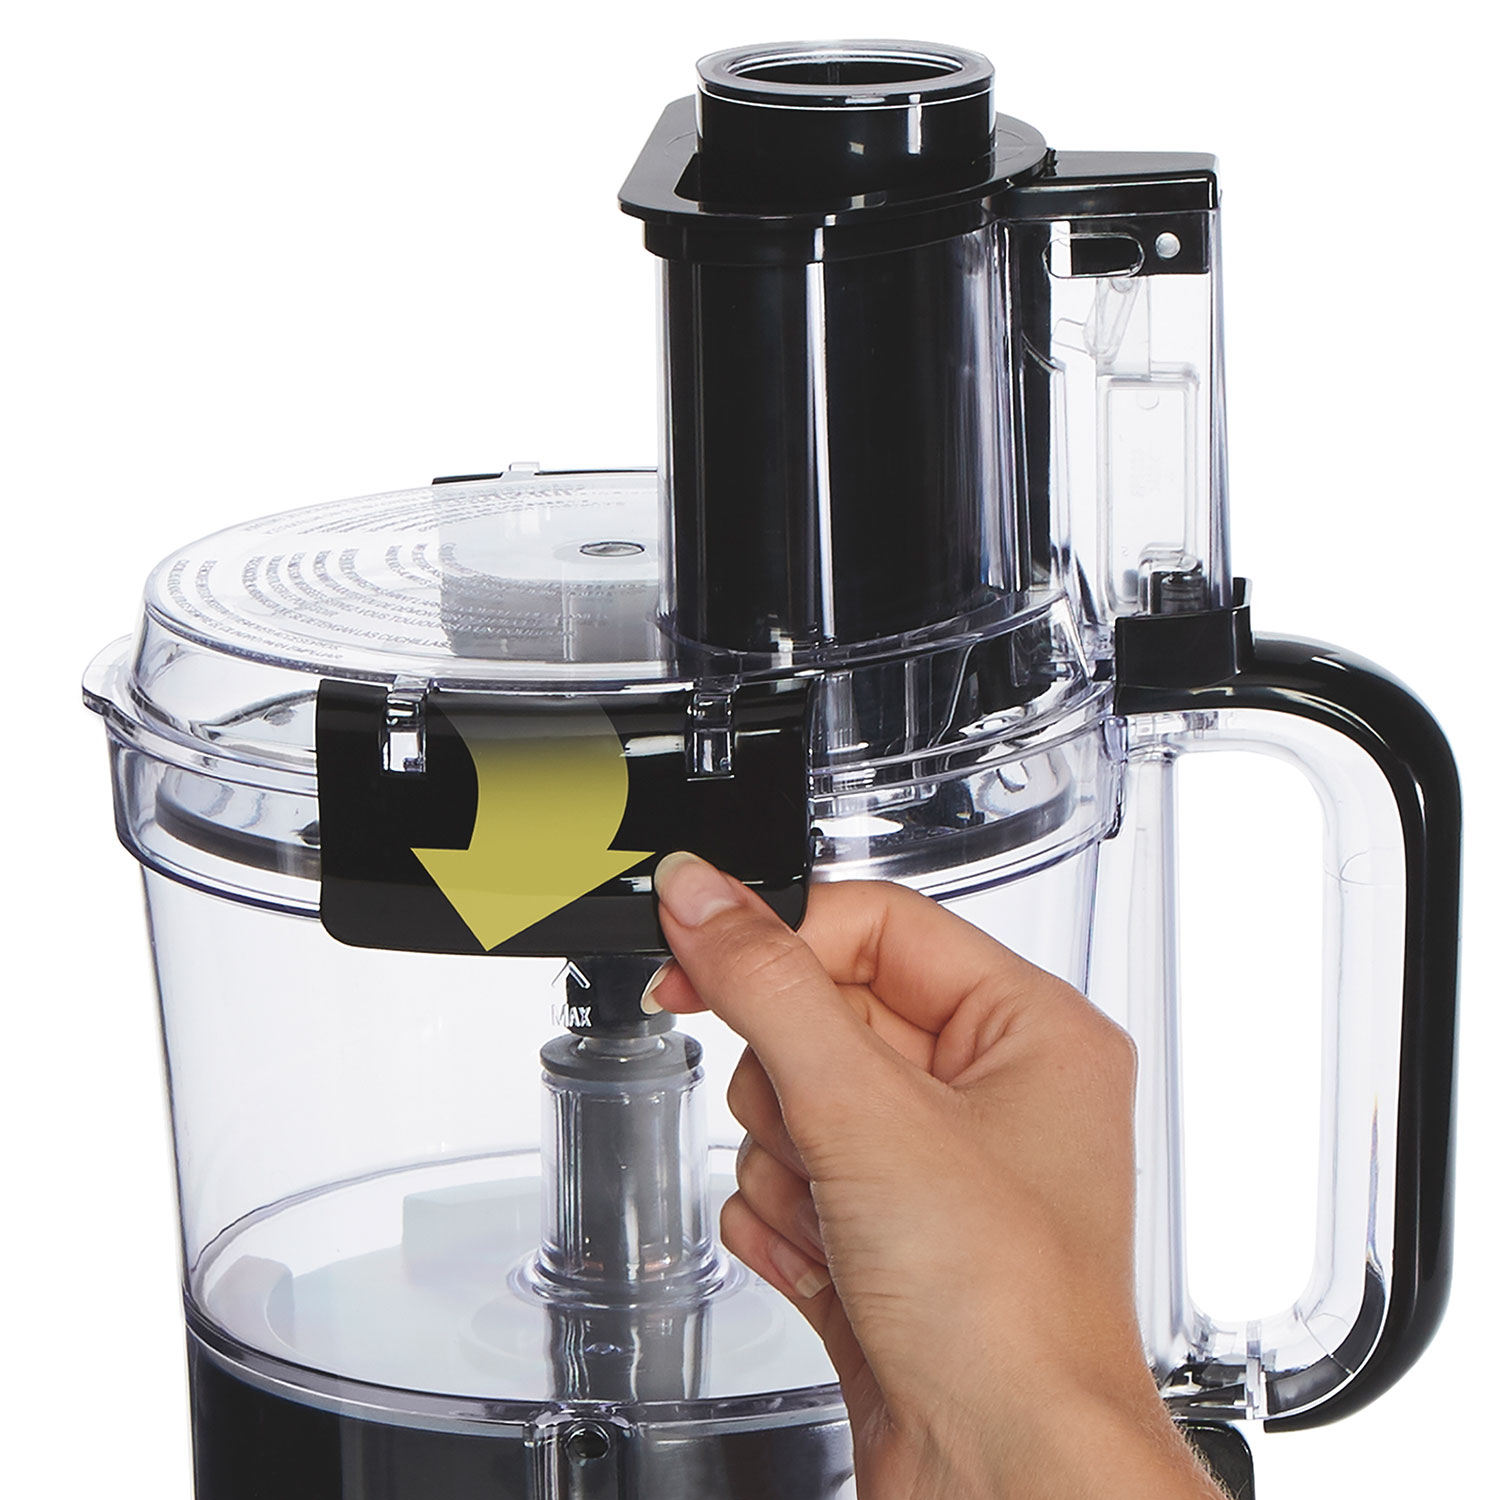 Hamilton Beach 10-Cup Stack & Snap™ Food Processor with Big Mouth®, Black & Stainless - 70723